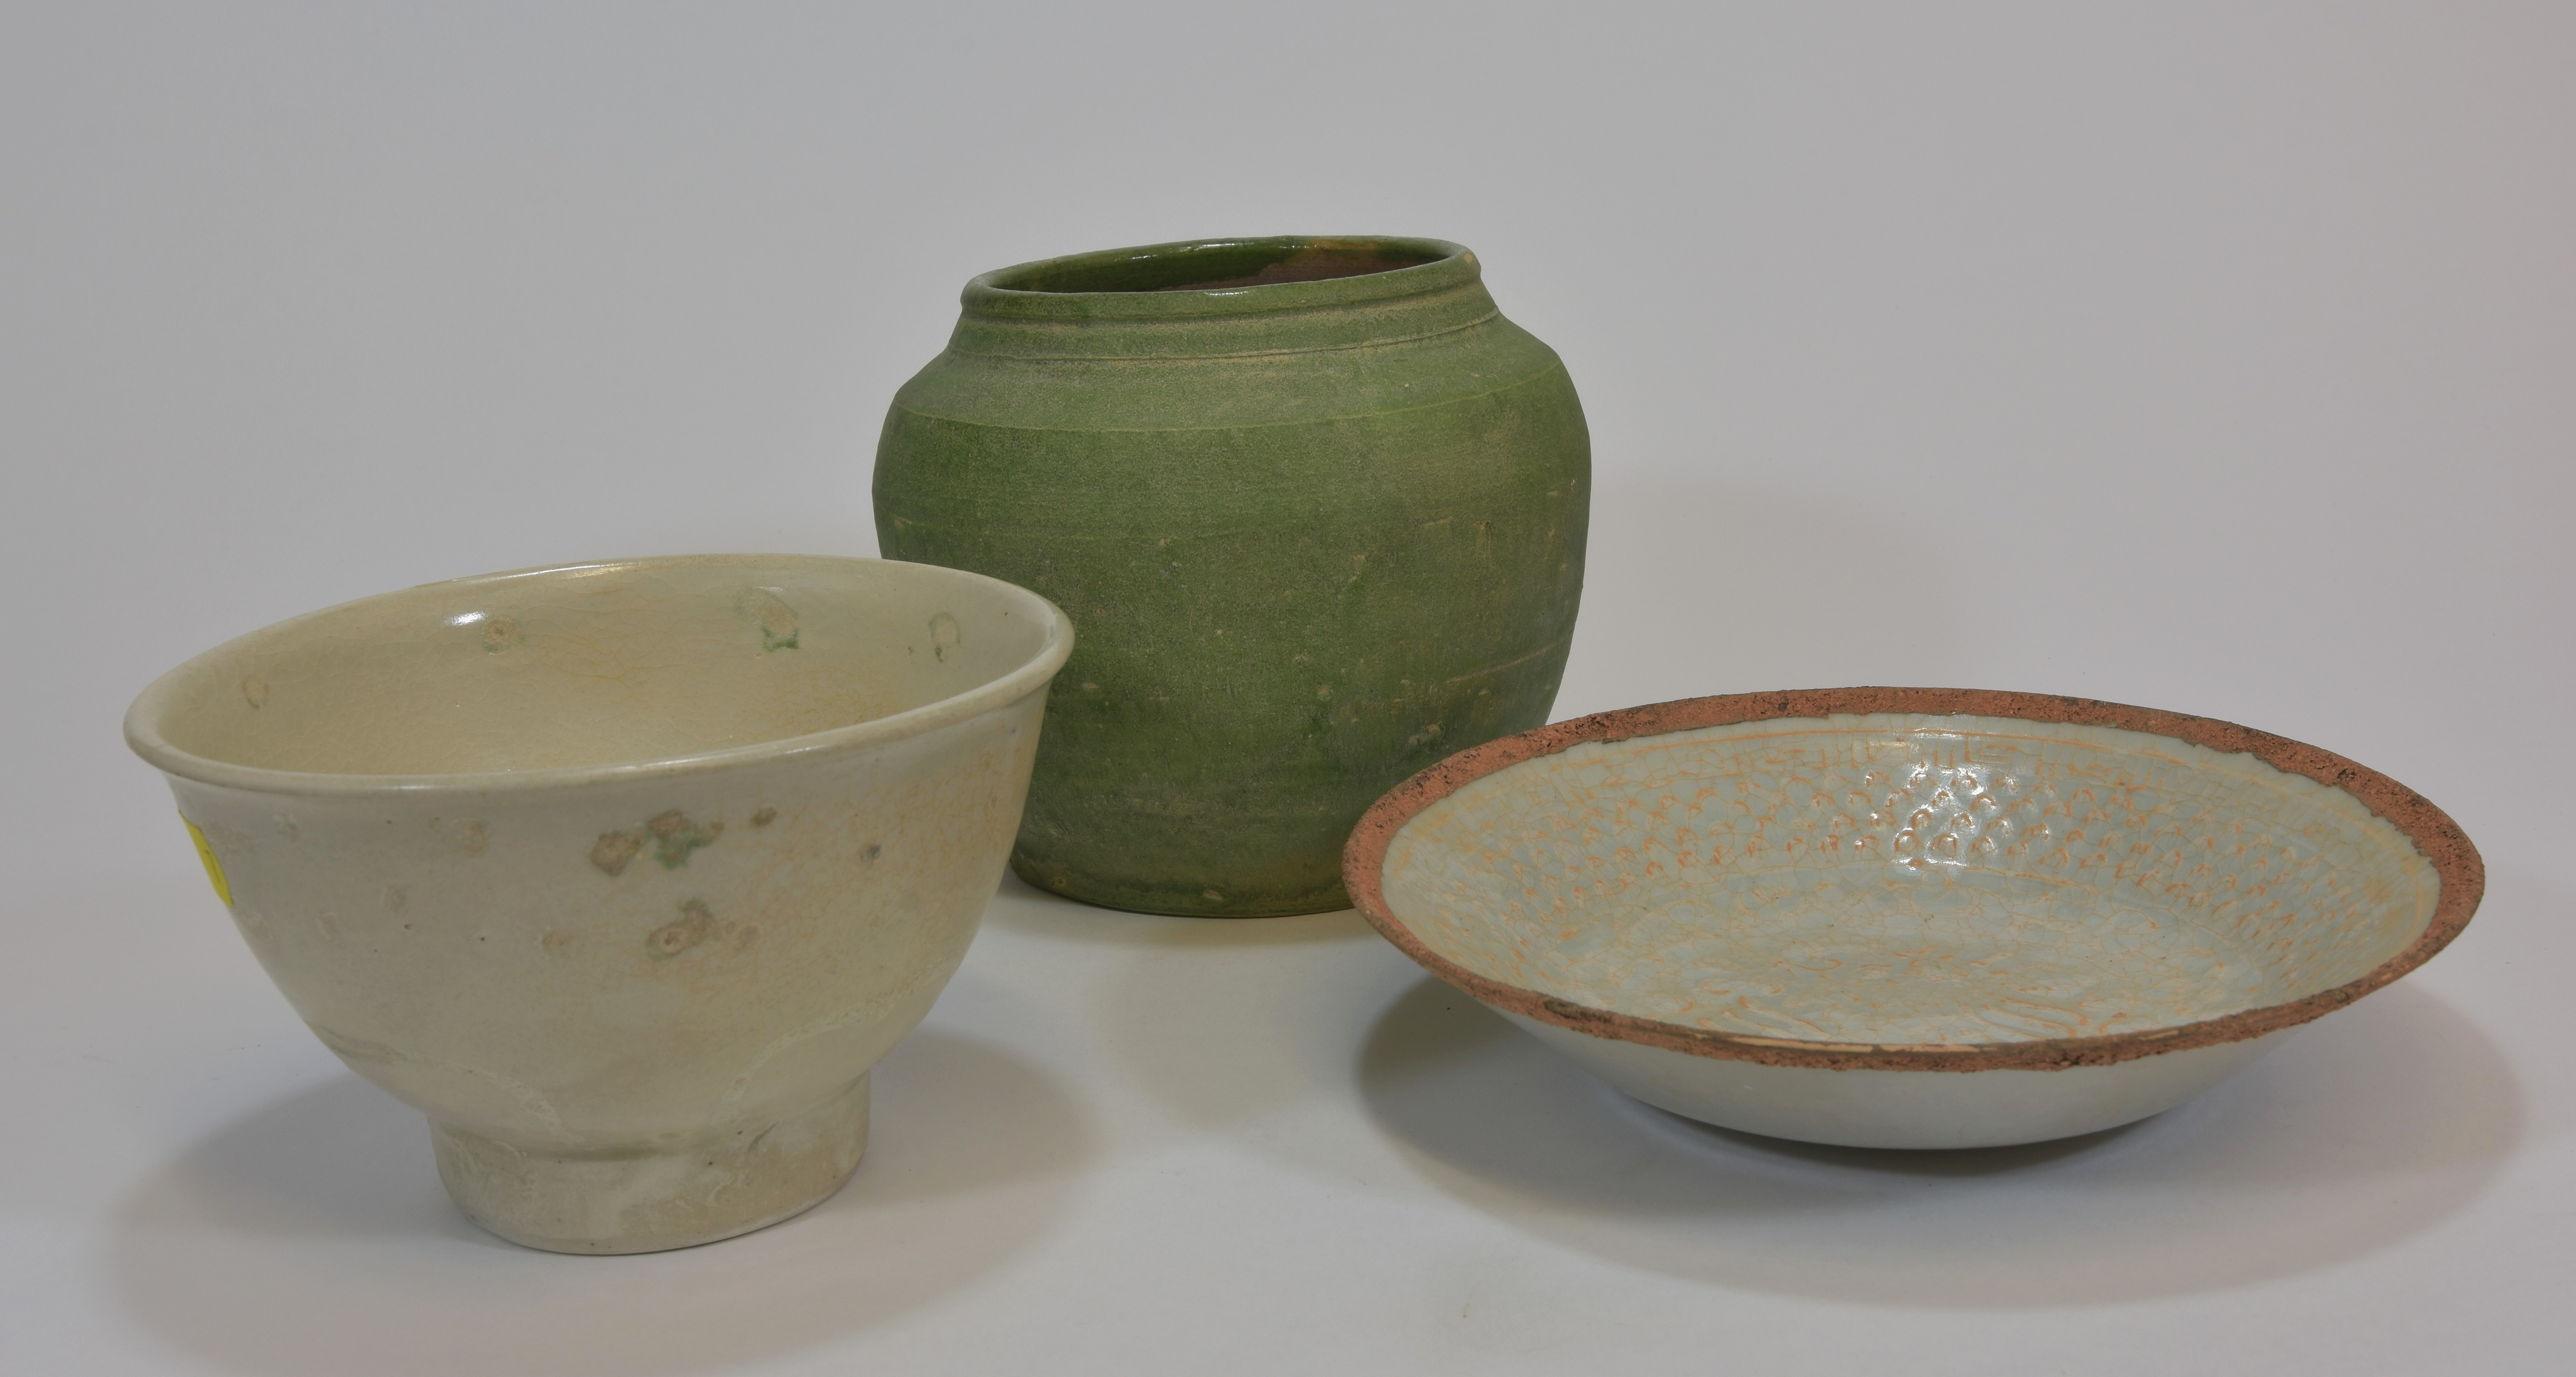 Lot 25 - A Hoi An pottery bowl and a green glazed Ming jar together with a Qingbai dish 13-15cm (3)越南碗,明青釉罐,